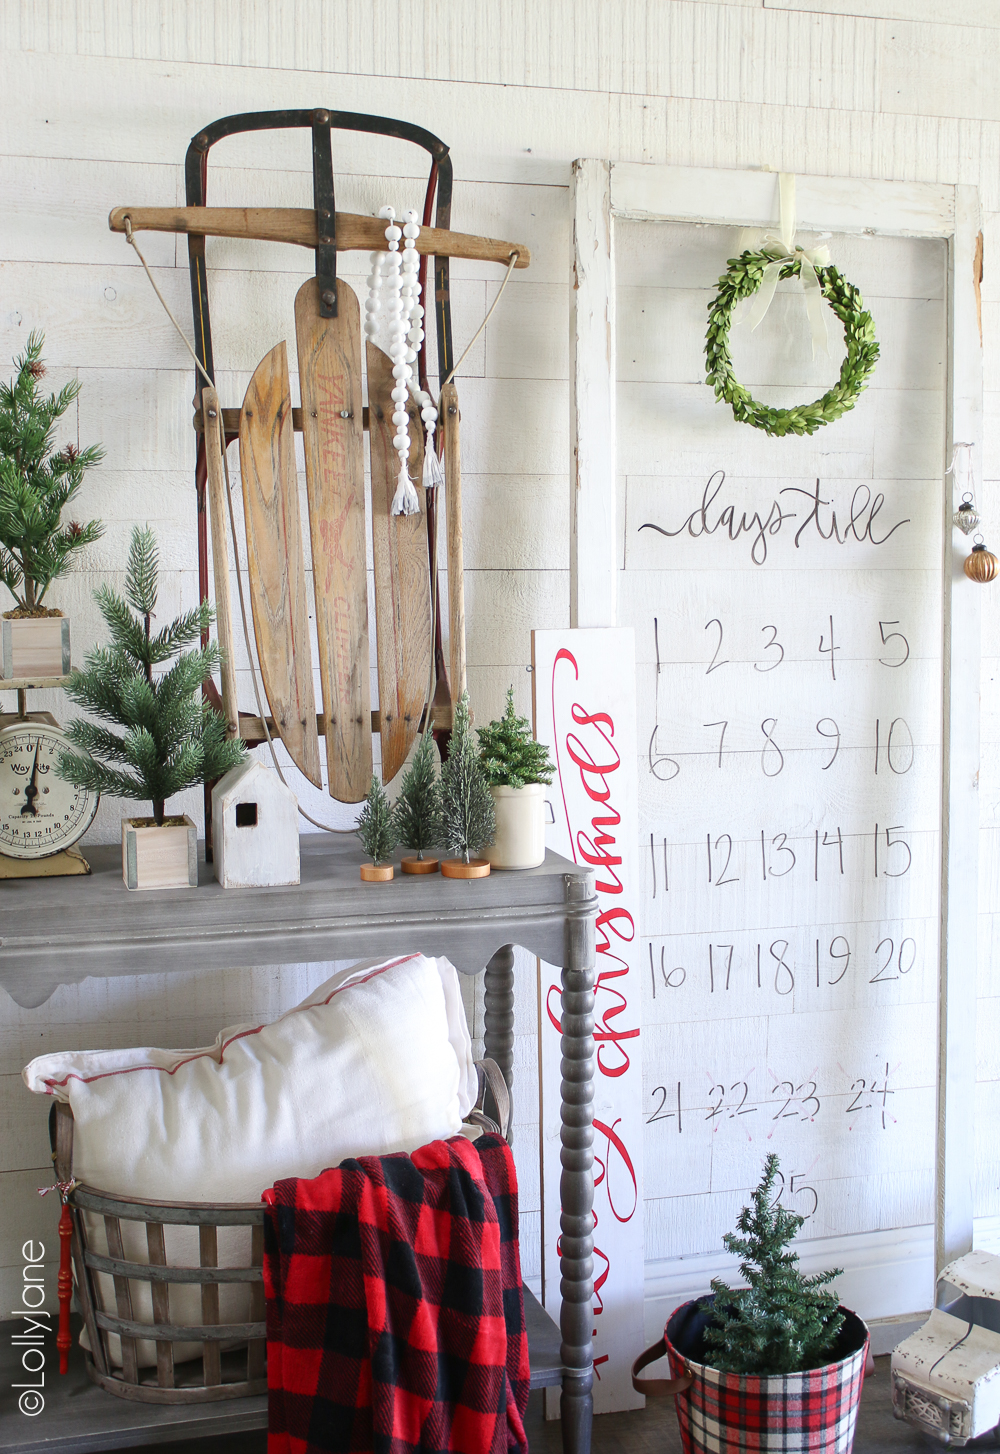 How to make a Christmas countdown board. Recycle an old window pane and use dry erase markers to create a super easy Christmas countdown! #diy #christmasdecor #christmasdecorations #dryerasecraft #christmascraft